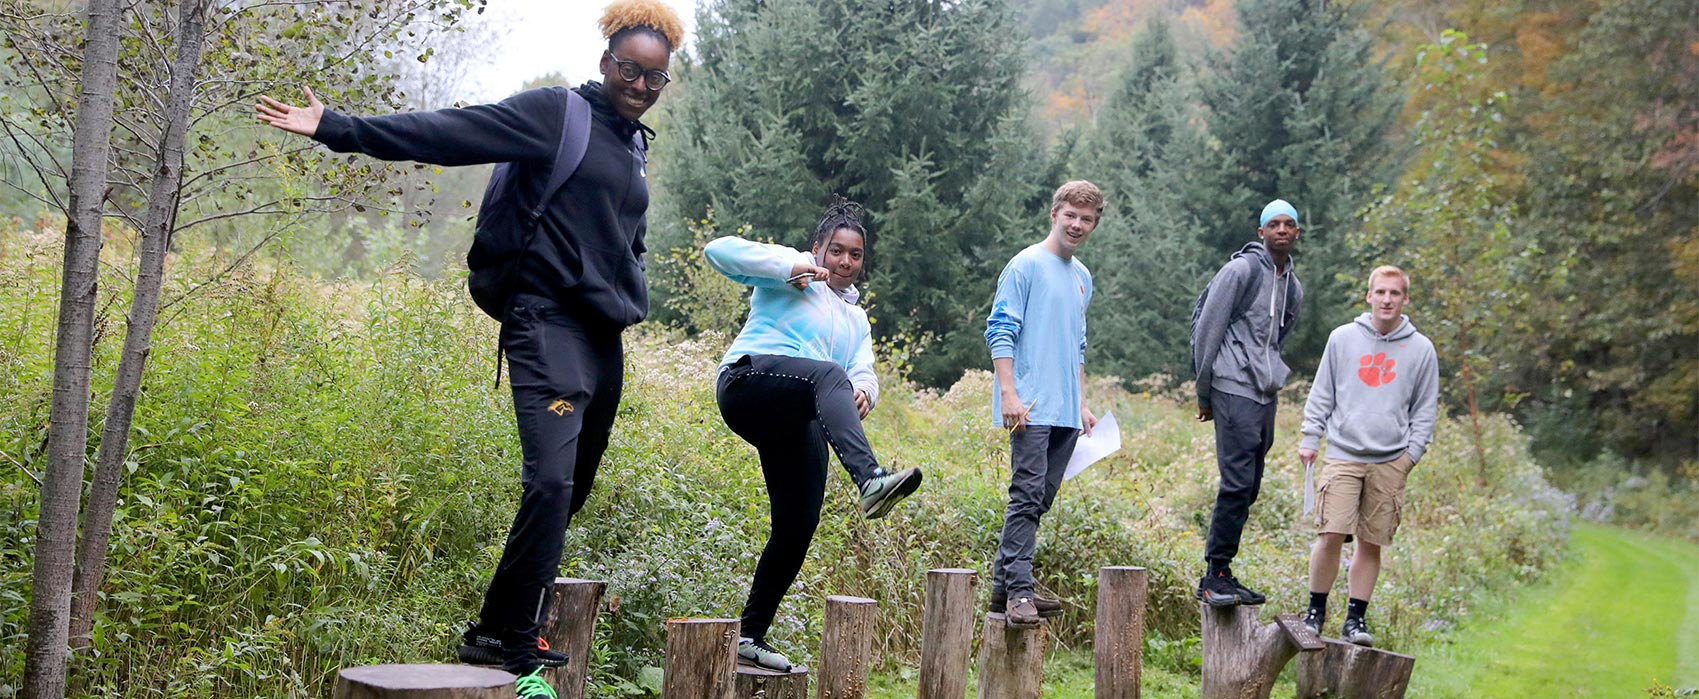 Students balancing on obstacle course tree stumps